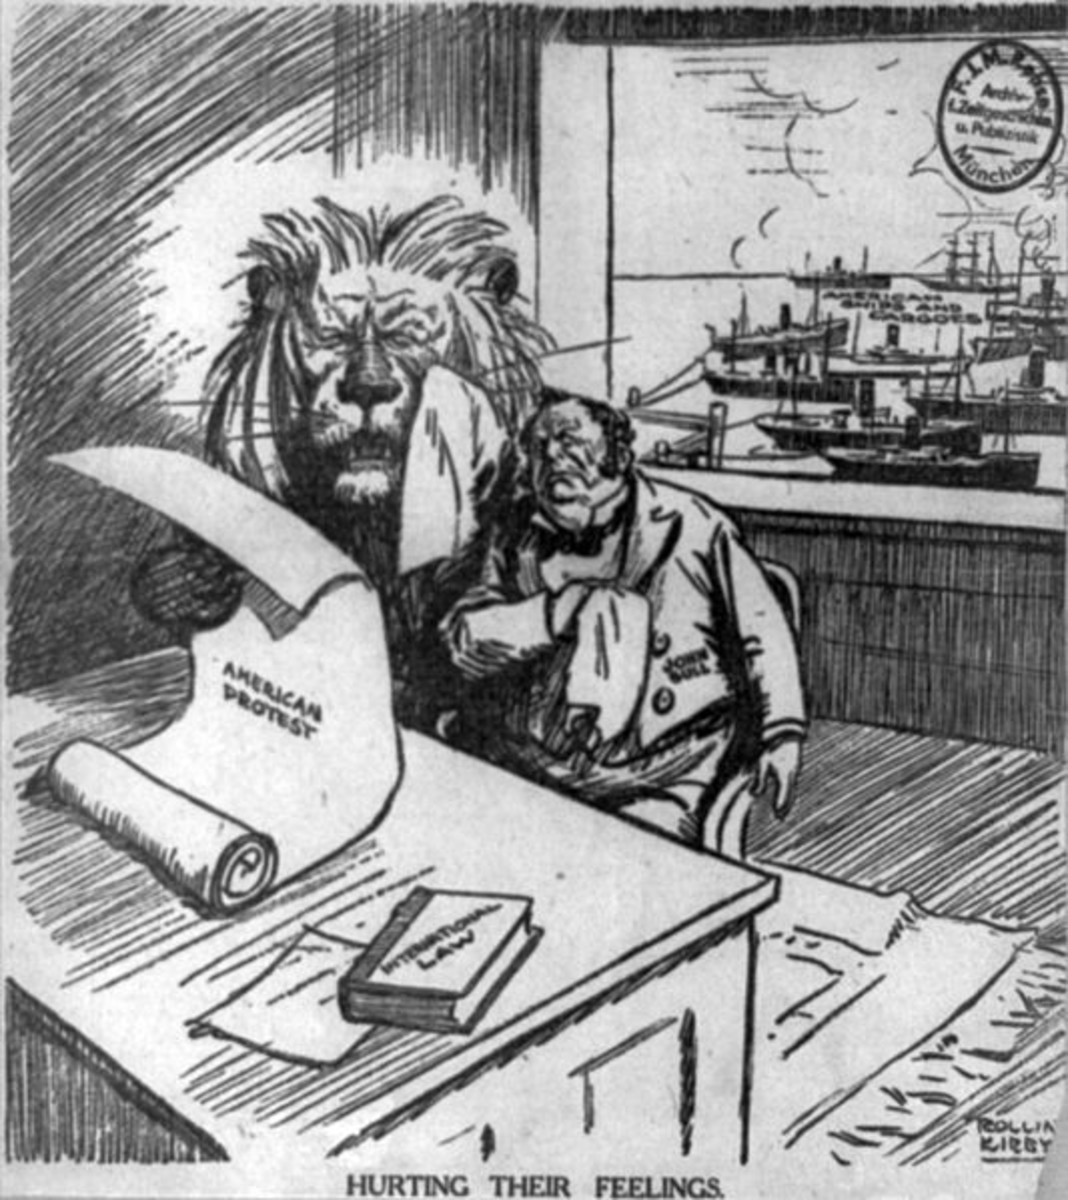 Political cartoon showing how American war protesters hurt British feelings, while American ships, loaded with cargo, fill the harbor behind them (1915).